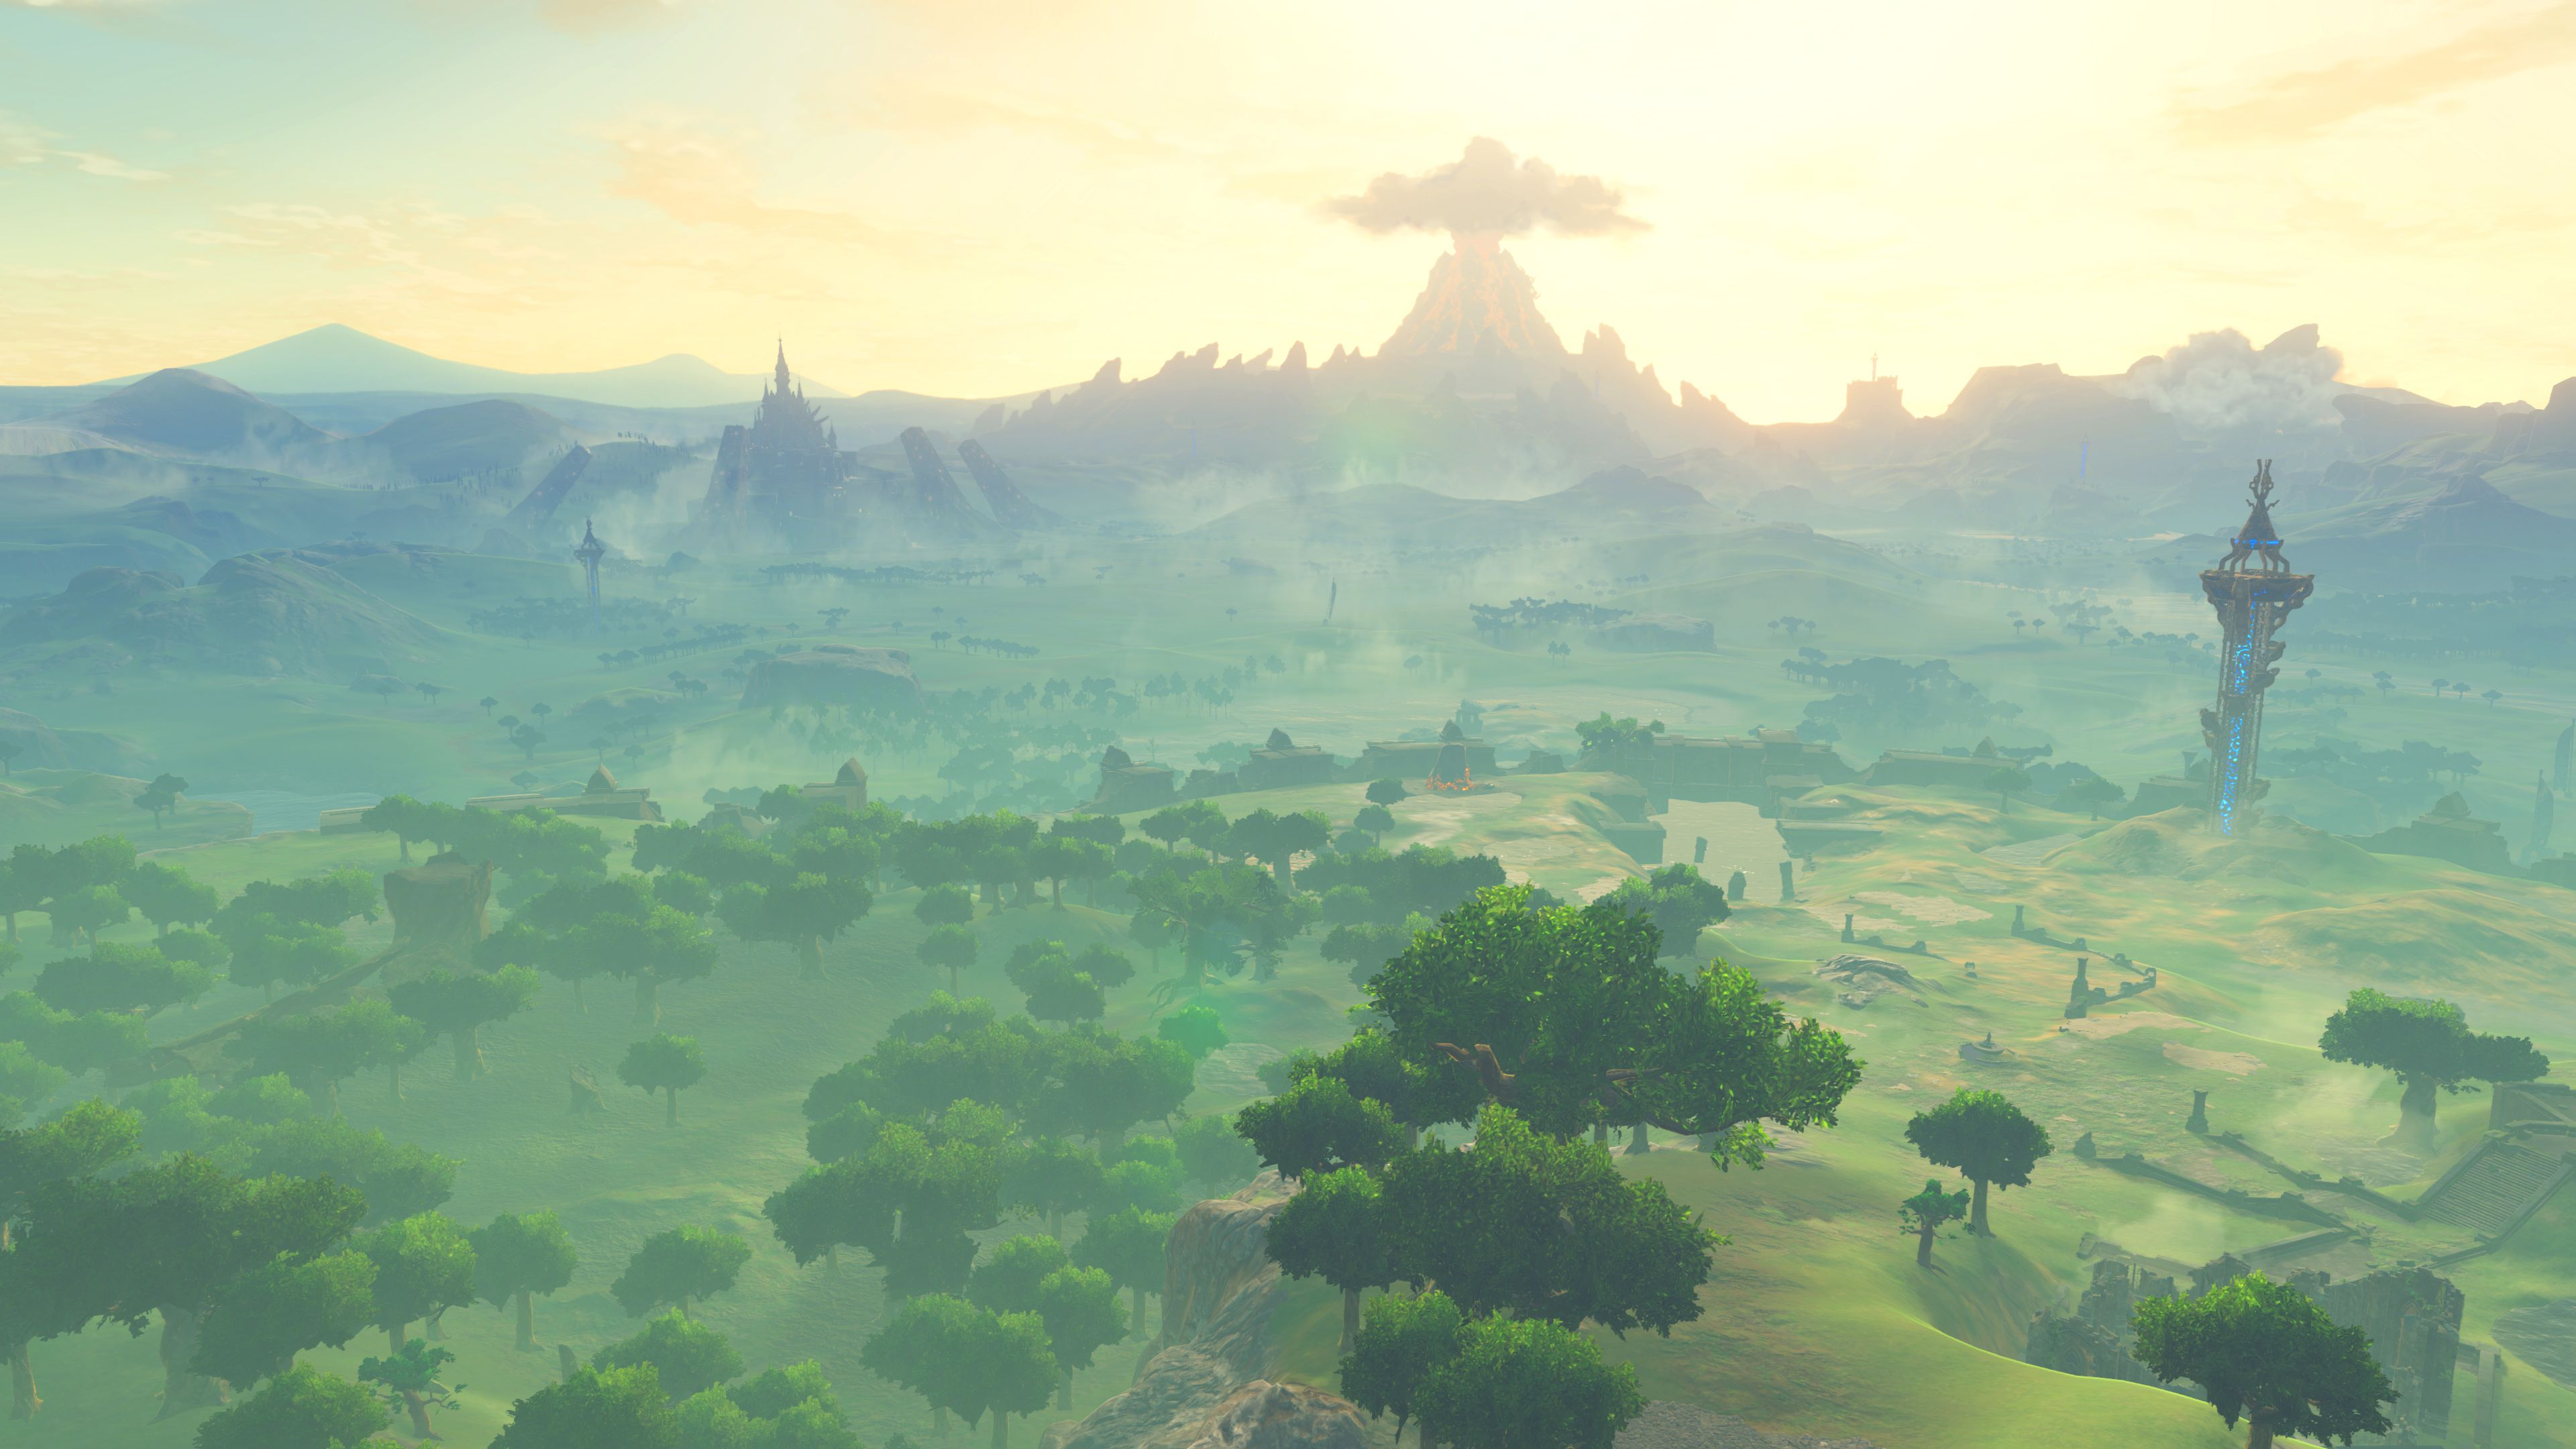 The Legend Of Zelda Breath Of The Wild Wallpaper Pack In 2020